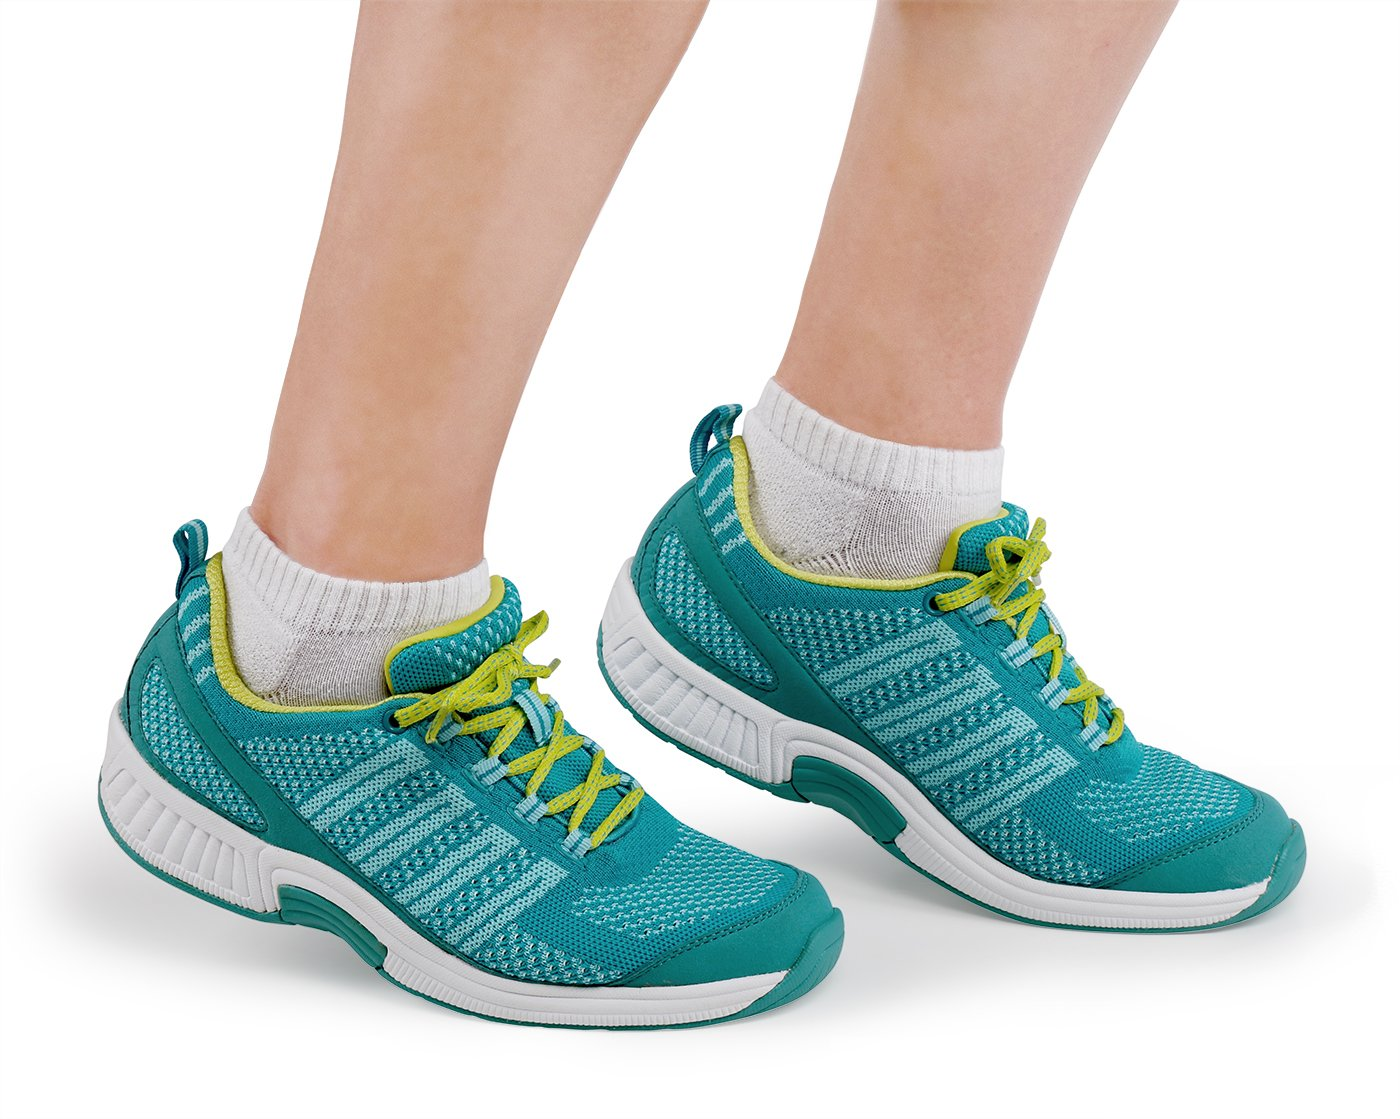 Orthofeet Proven Orthopedic Pain Relief Coral Women's Orthopedic Proven Diabetic Athletic Sneaker B01N6BCZT3 12 B(M) US|Turquoise 2a366f